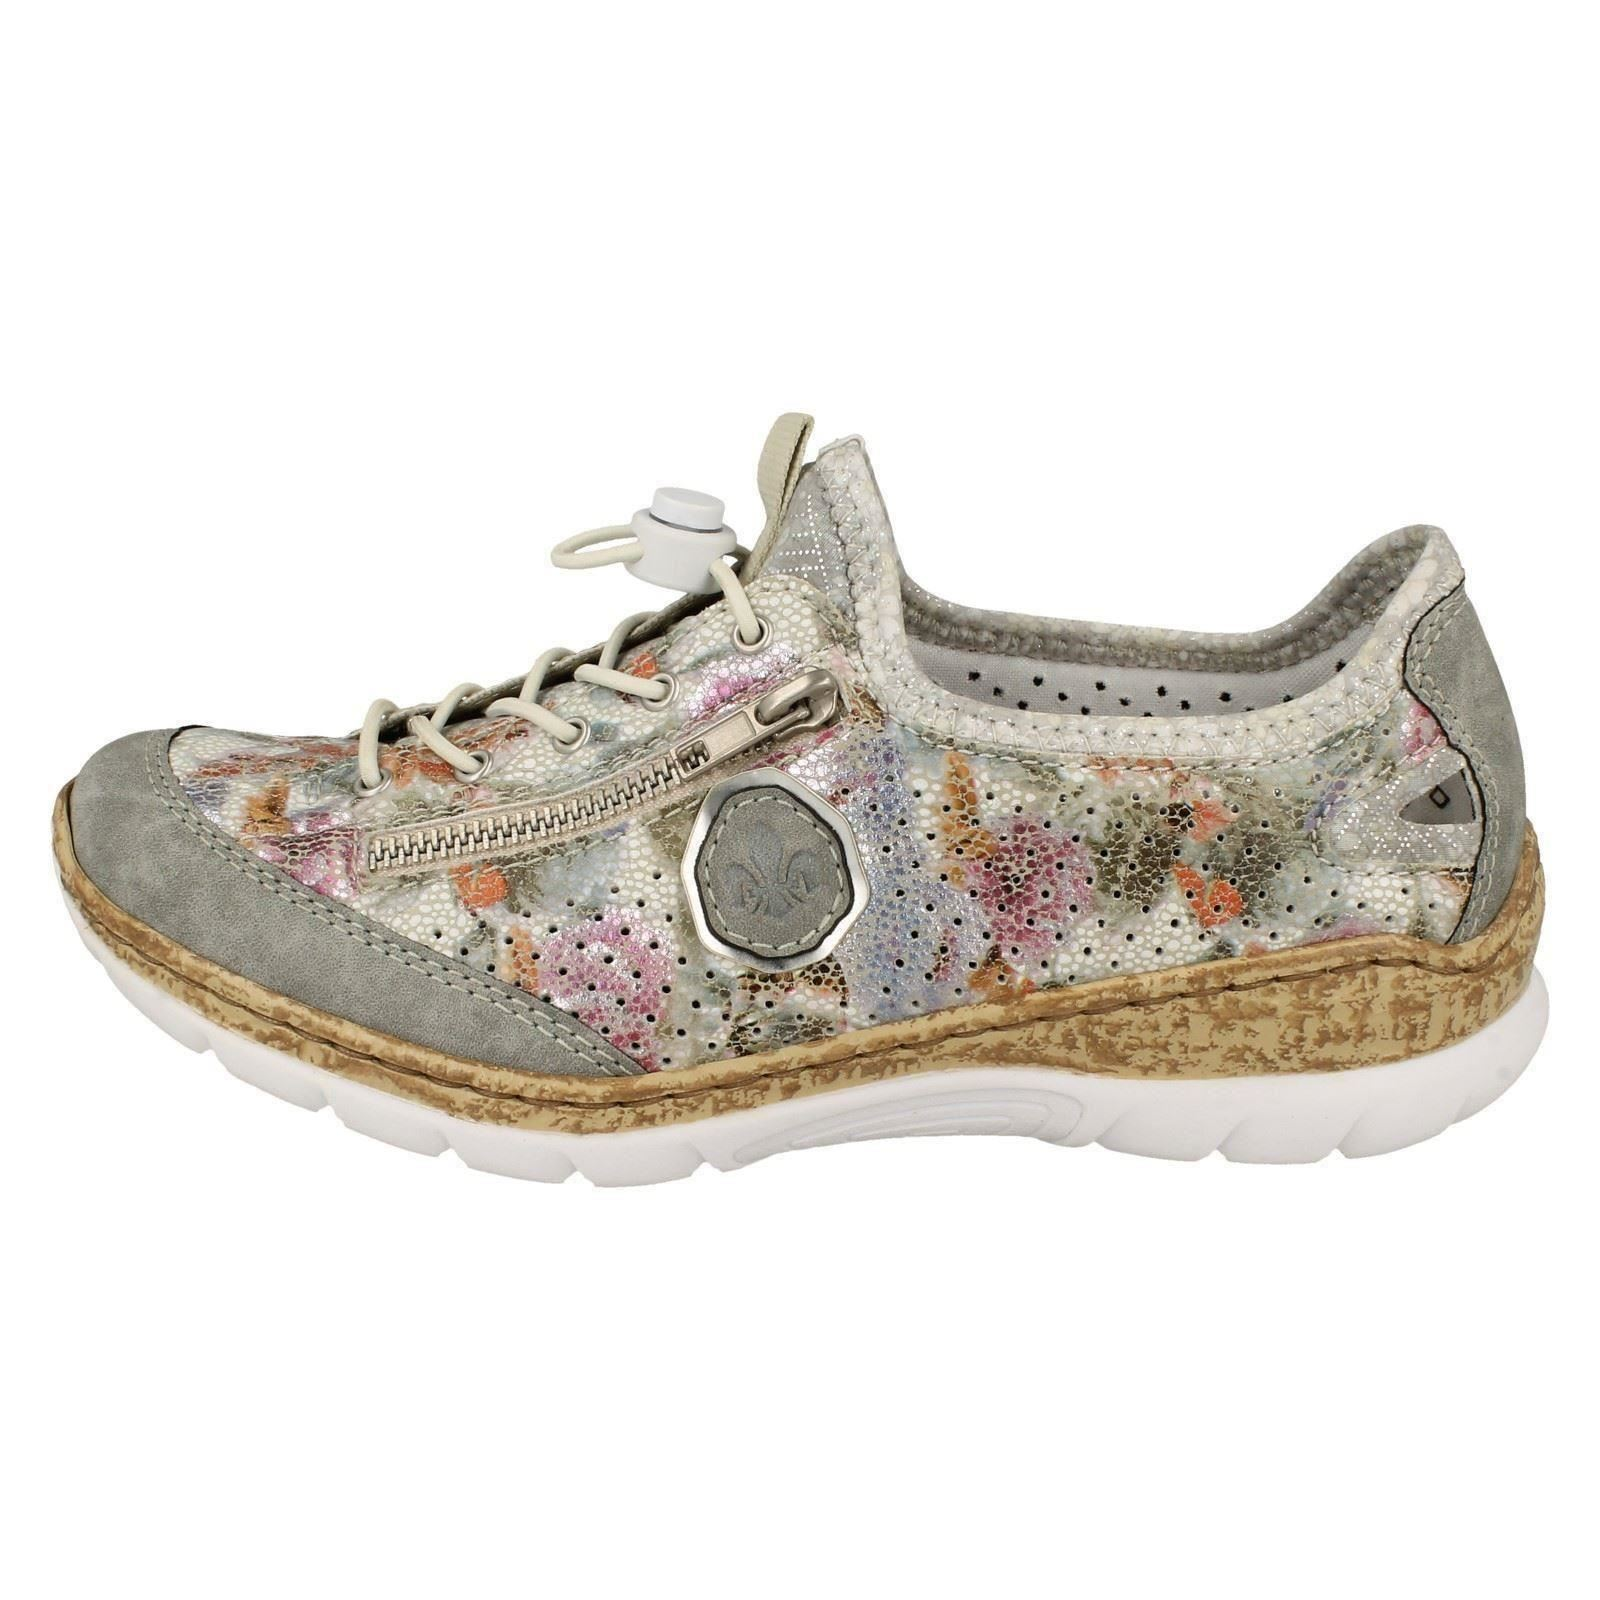 Details about Ladies Rieker Casual Slip On Trainers N42V1